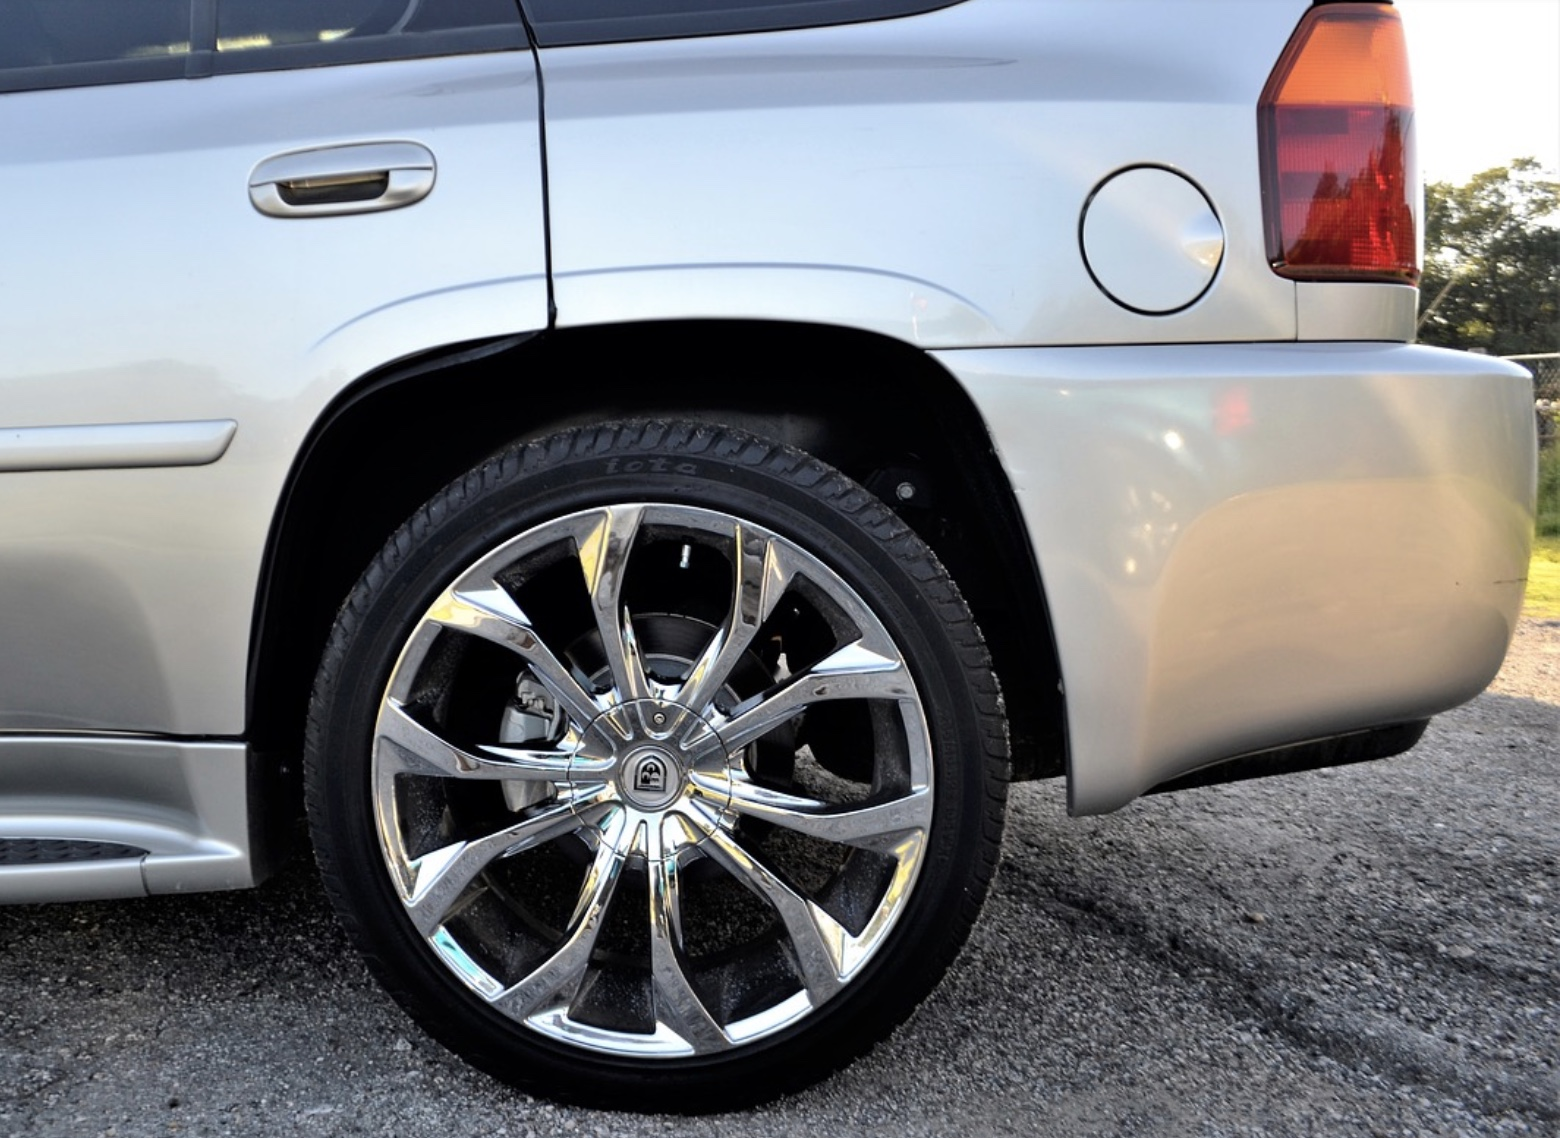 Car tires, for tires in Murfreesboro, TN call today, auto mechanic for oil change, brakes, mufflers, engines, engine repair and more, call us today!